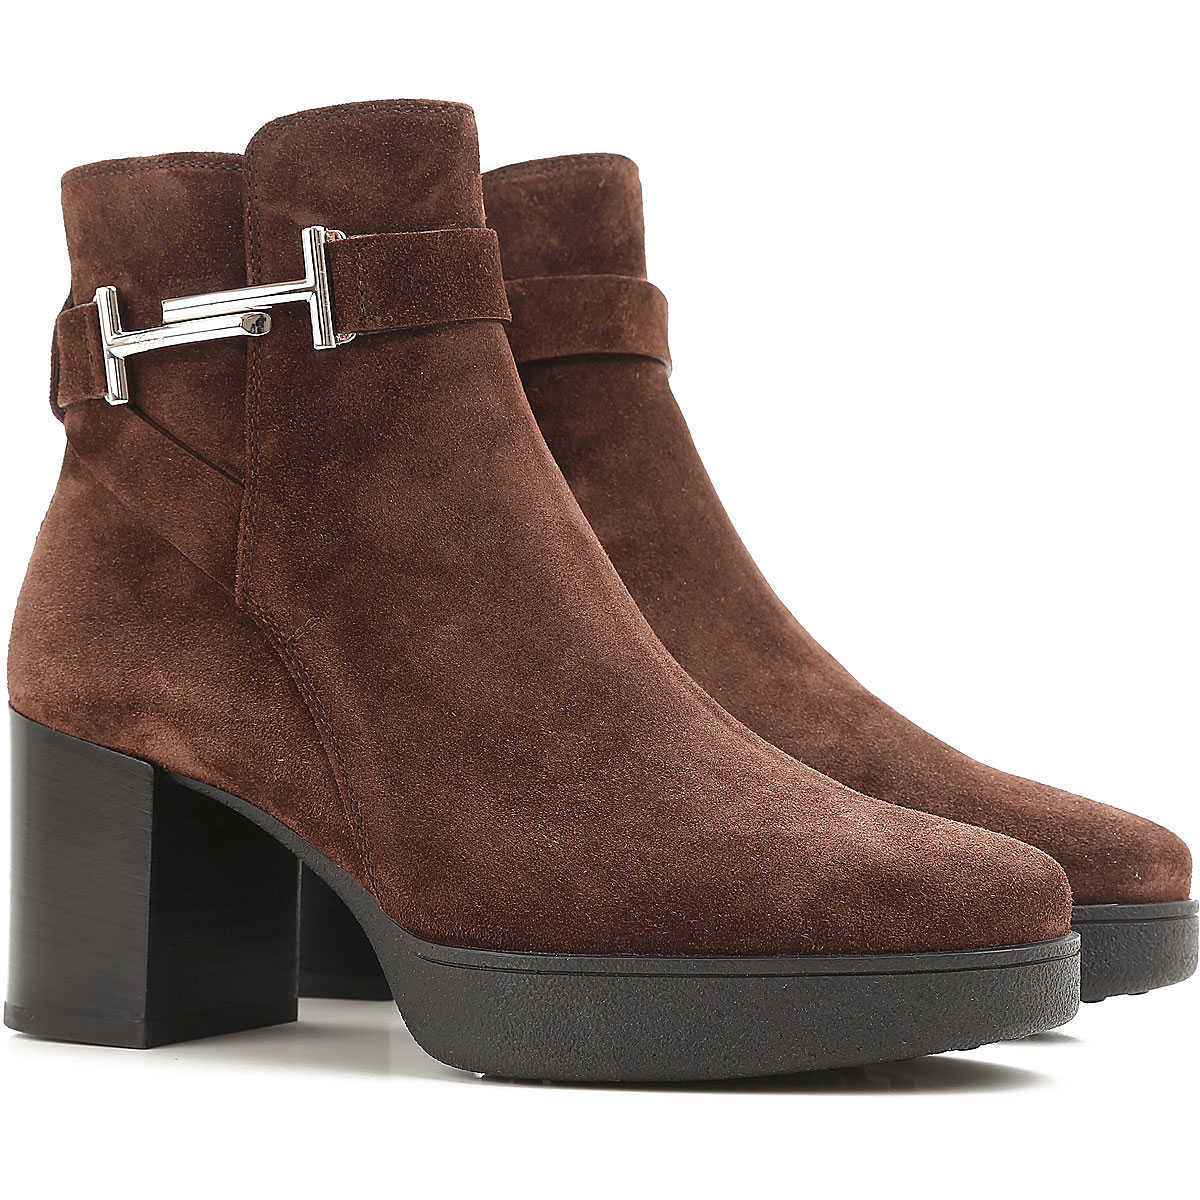 Tods Boots for Women Booties On Sale in Outlet - GOOFASH